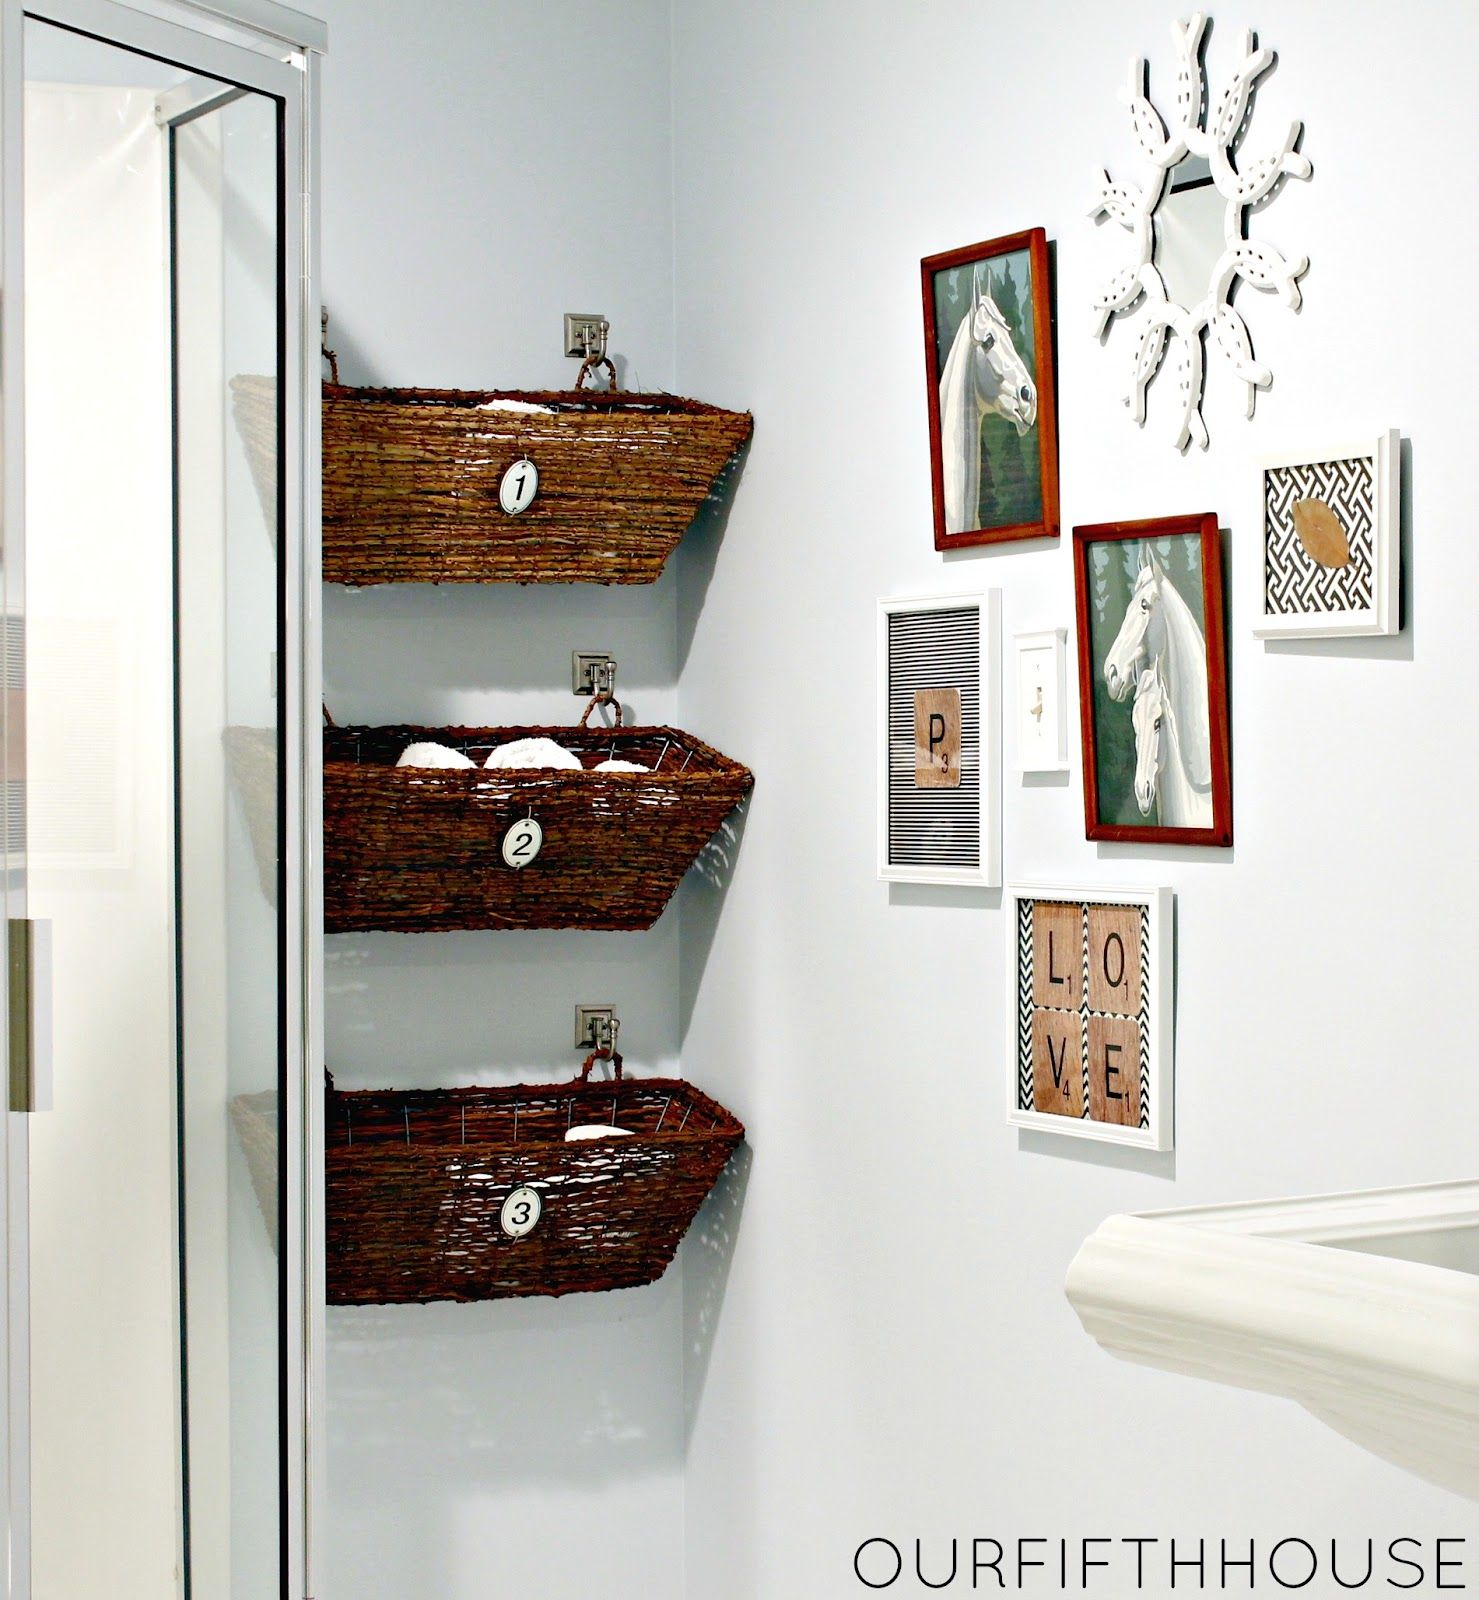 Love These Baskets Hanging From Simple Hooks Or Window Boxes Used As Bathroom Storage By Our Fifth House And Decorative For Behind A